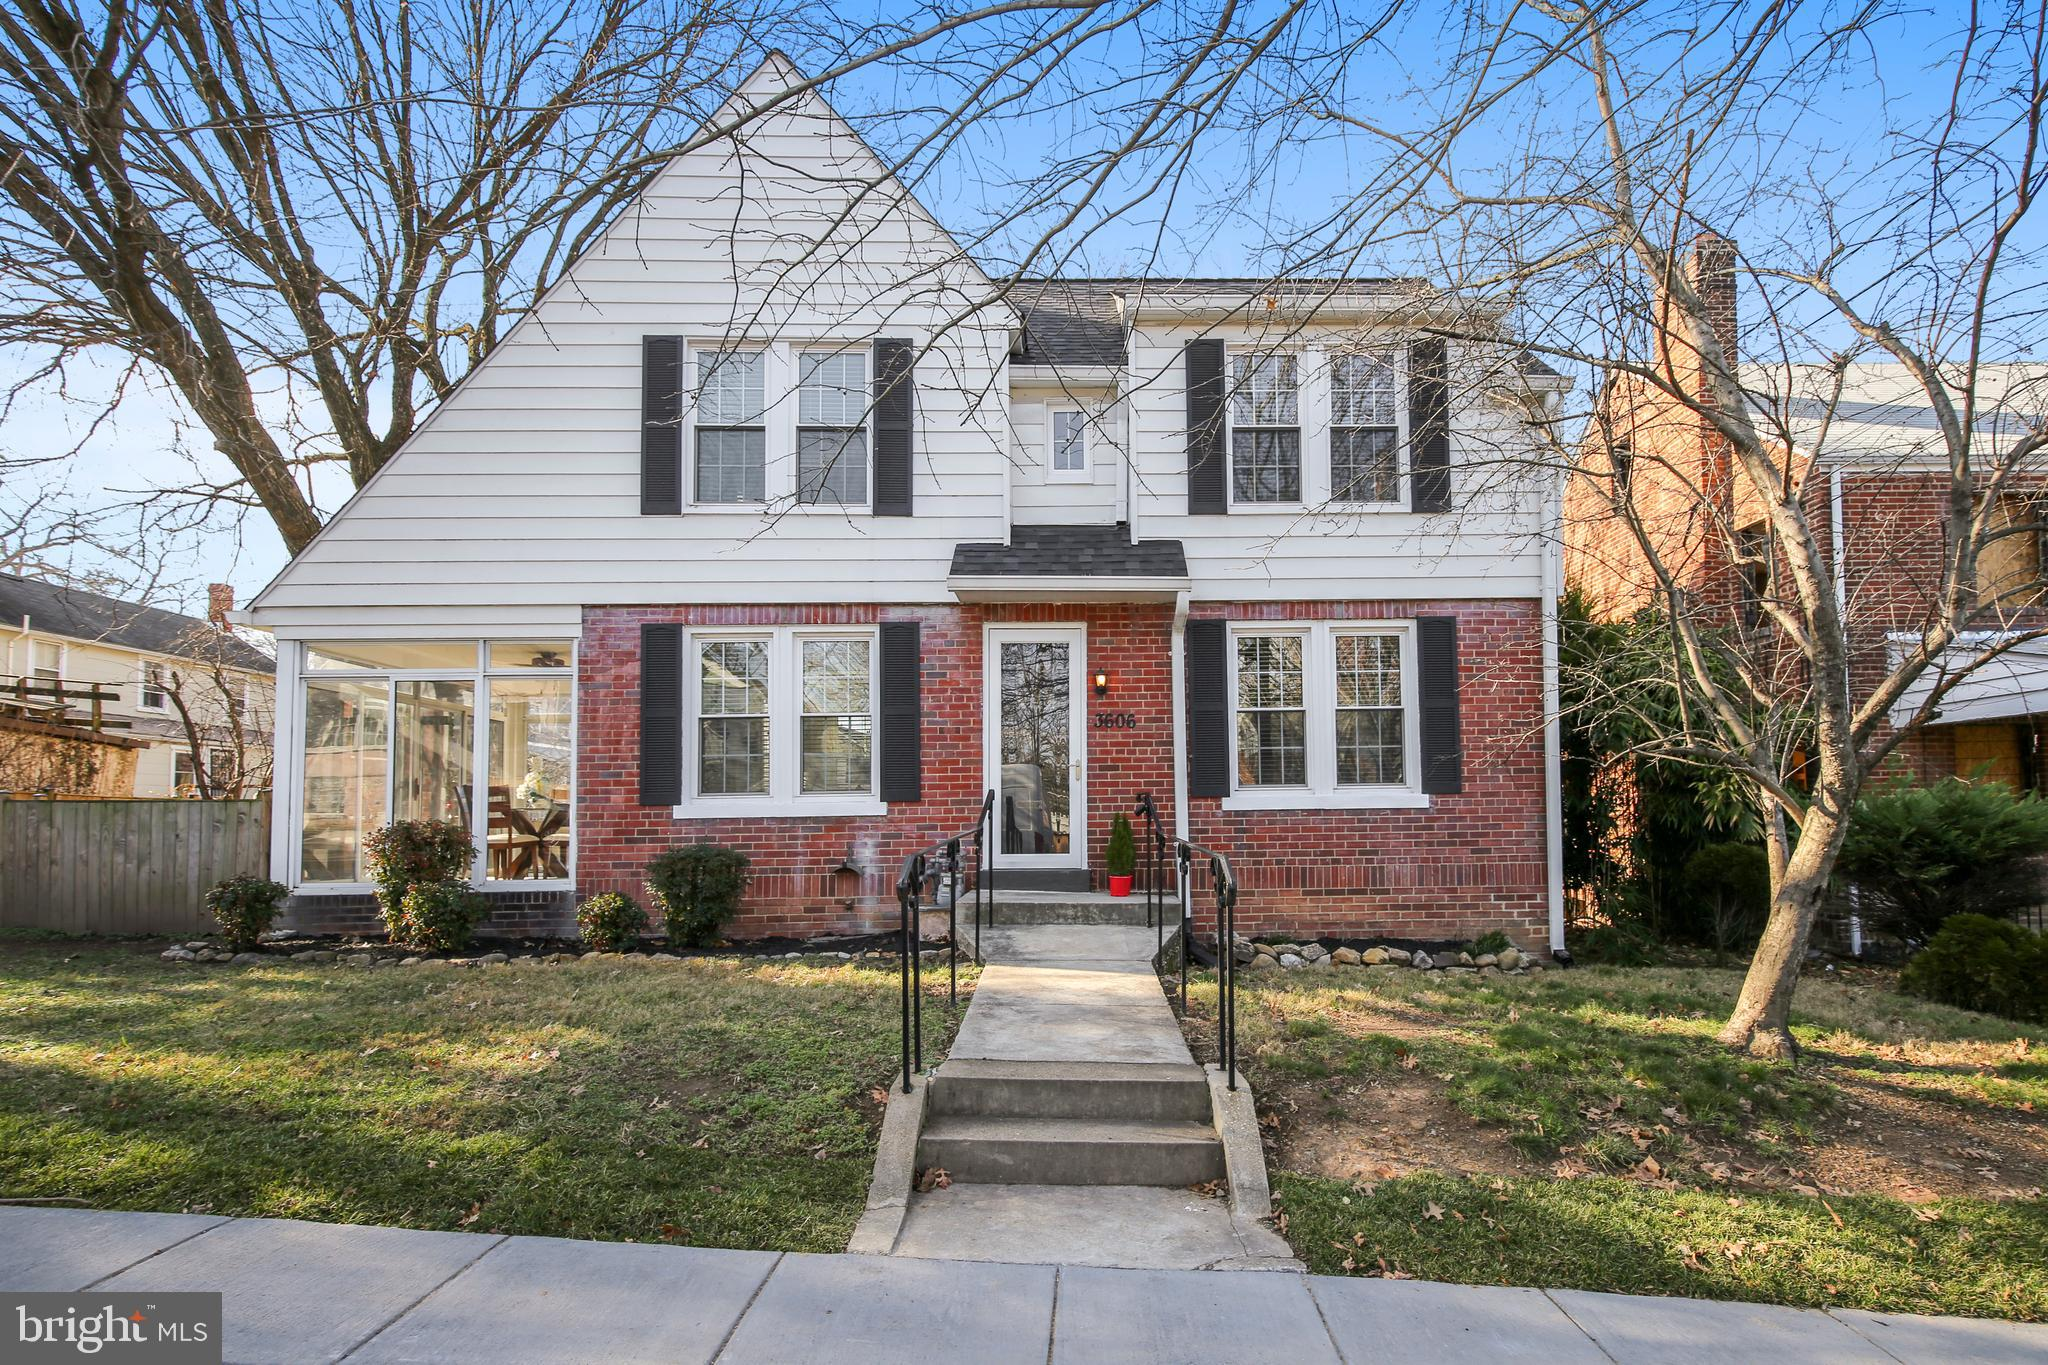 Now's your chance to discover this charming 4-bedroom/2-bathroom home in northeast DC's coveted Brookland neighborhood. Features include renovated kitchen and bathrooms, screened-in side porch for entertaining and lounging, finished basement with private entrance, hardwood floors, and working fireplace.  Live within blocks of a Red Line Metro station, restaurants, bars, rec centers, and green spaces. Off-Street Parking included. Come see for yourself! <b>OPEN HOUSE SUN 1-4</b>